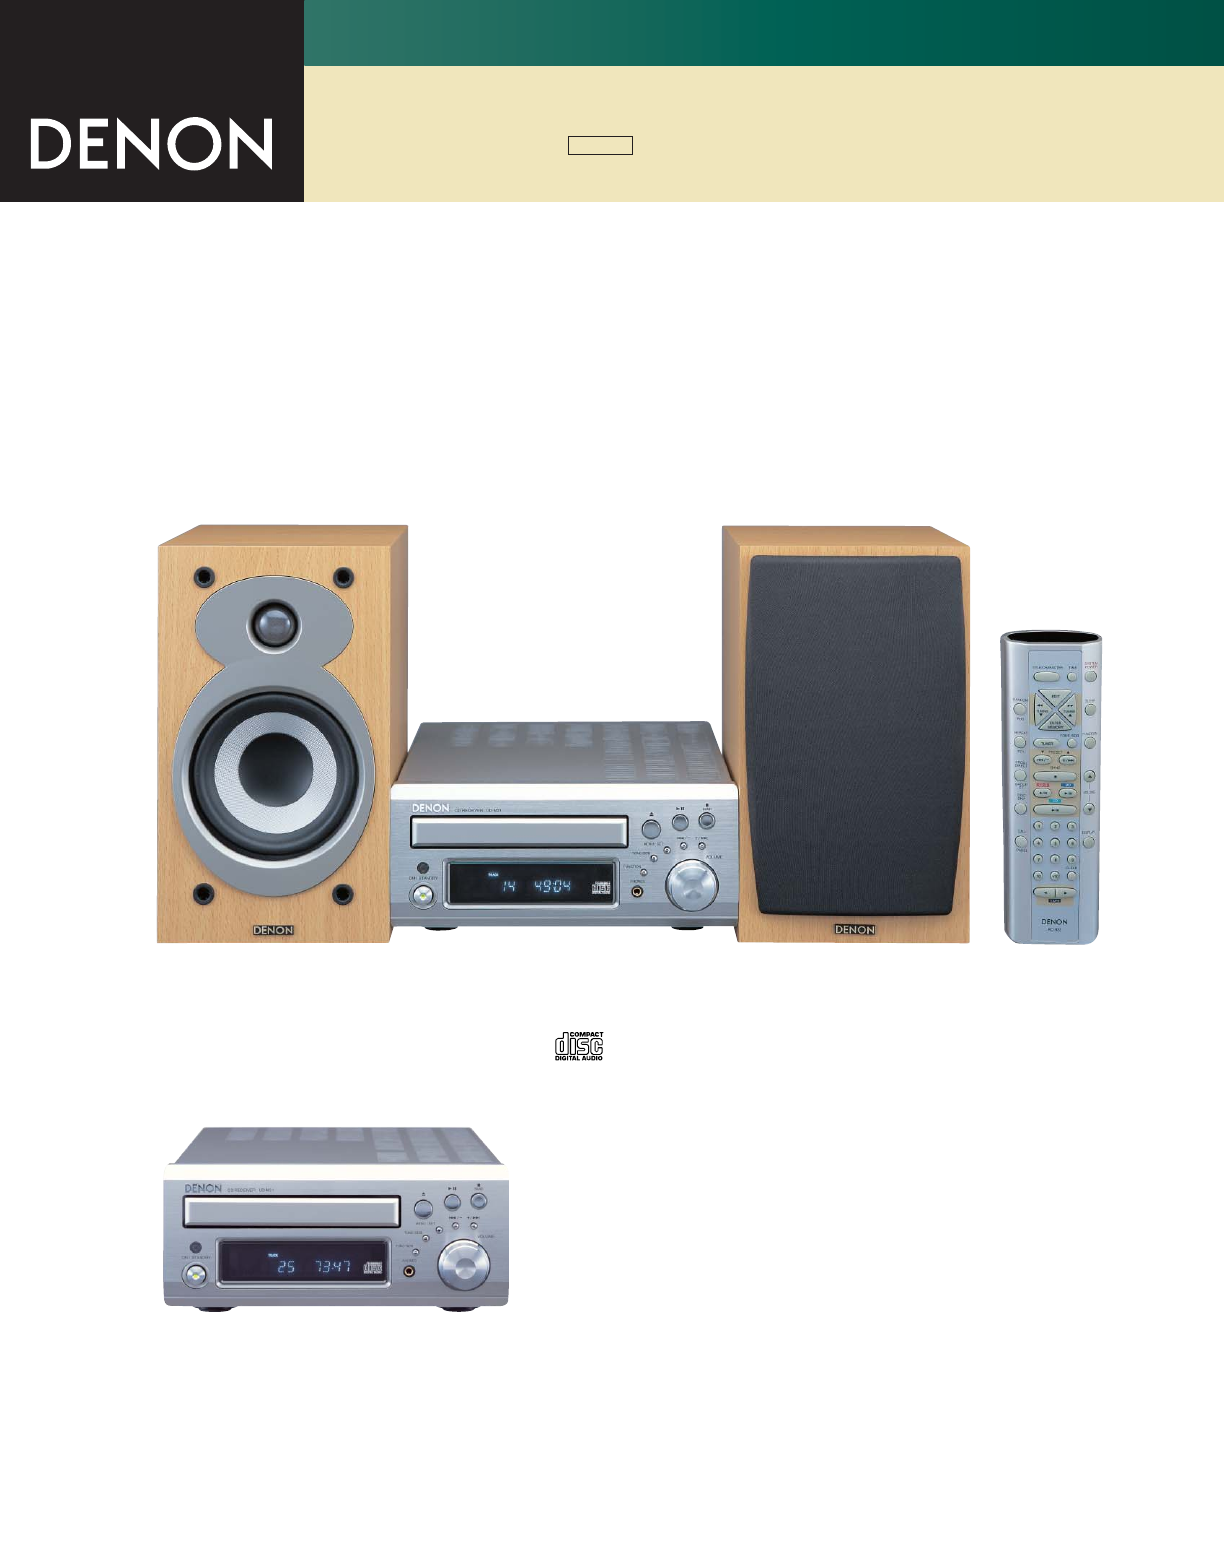 denon cd player ud m31 user guide manualsonline com rh audio manualsonline com M31 Rifle M31 Rifle